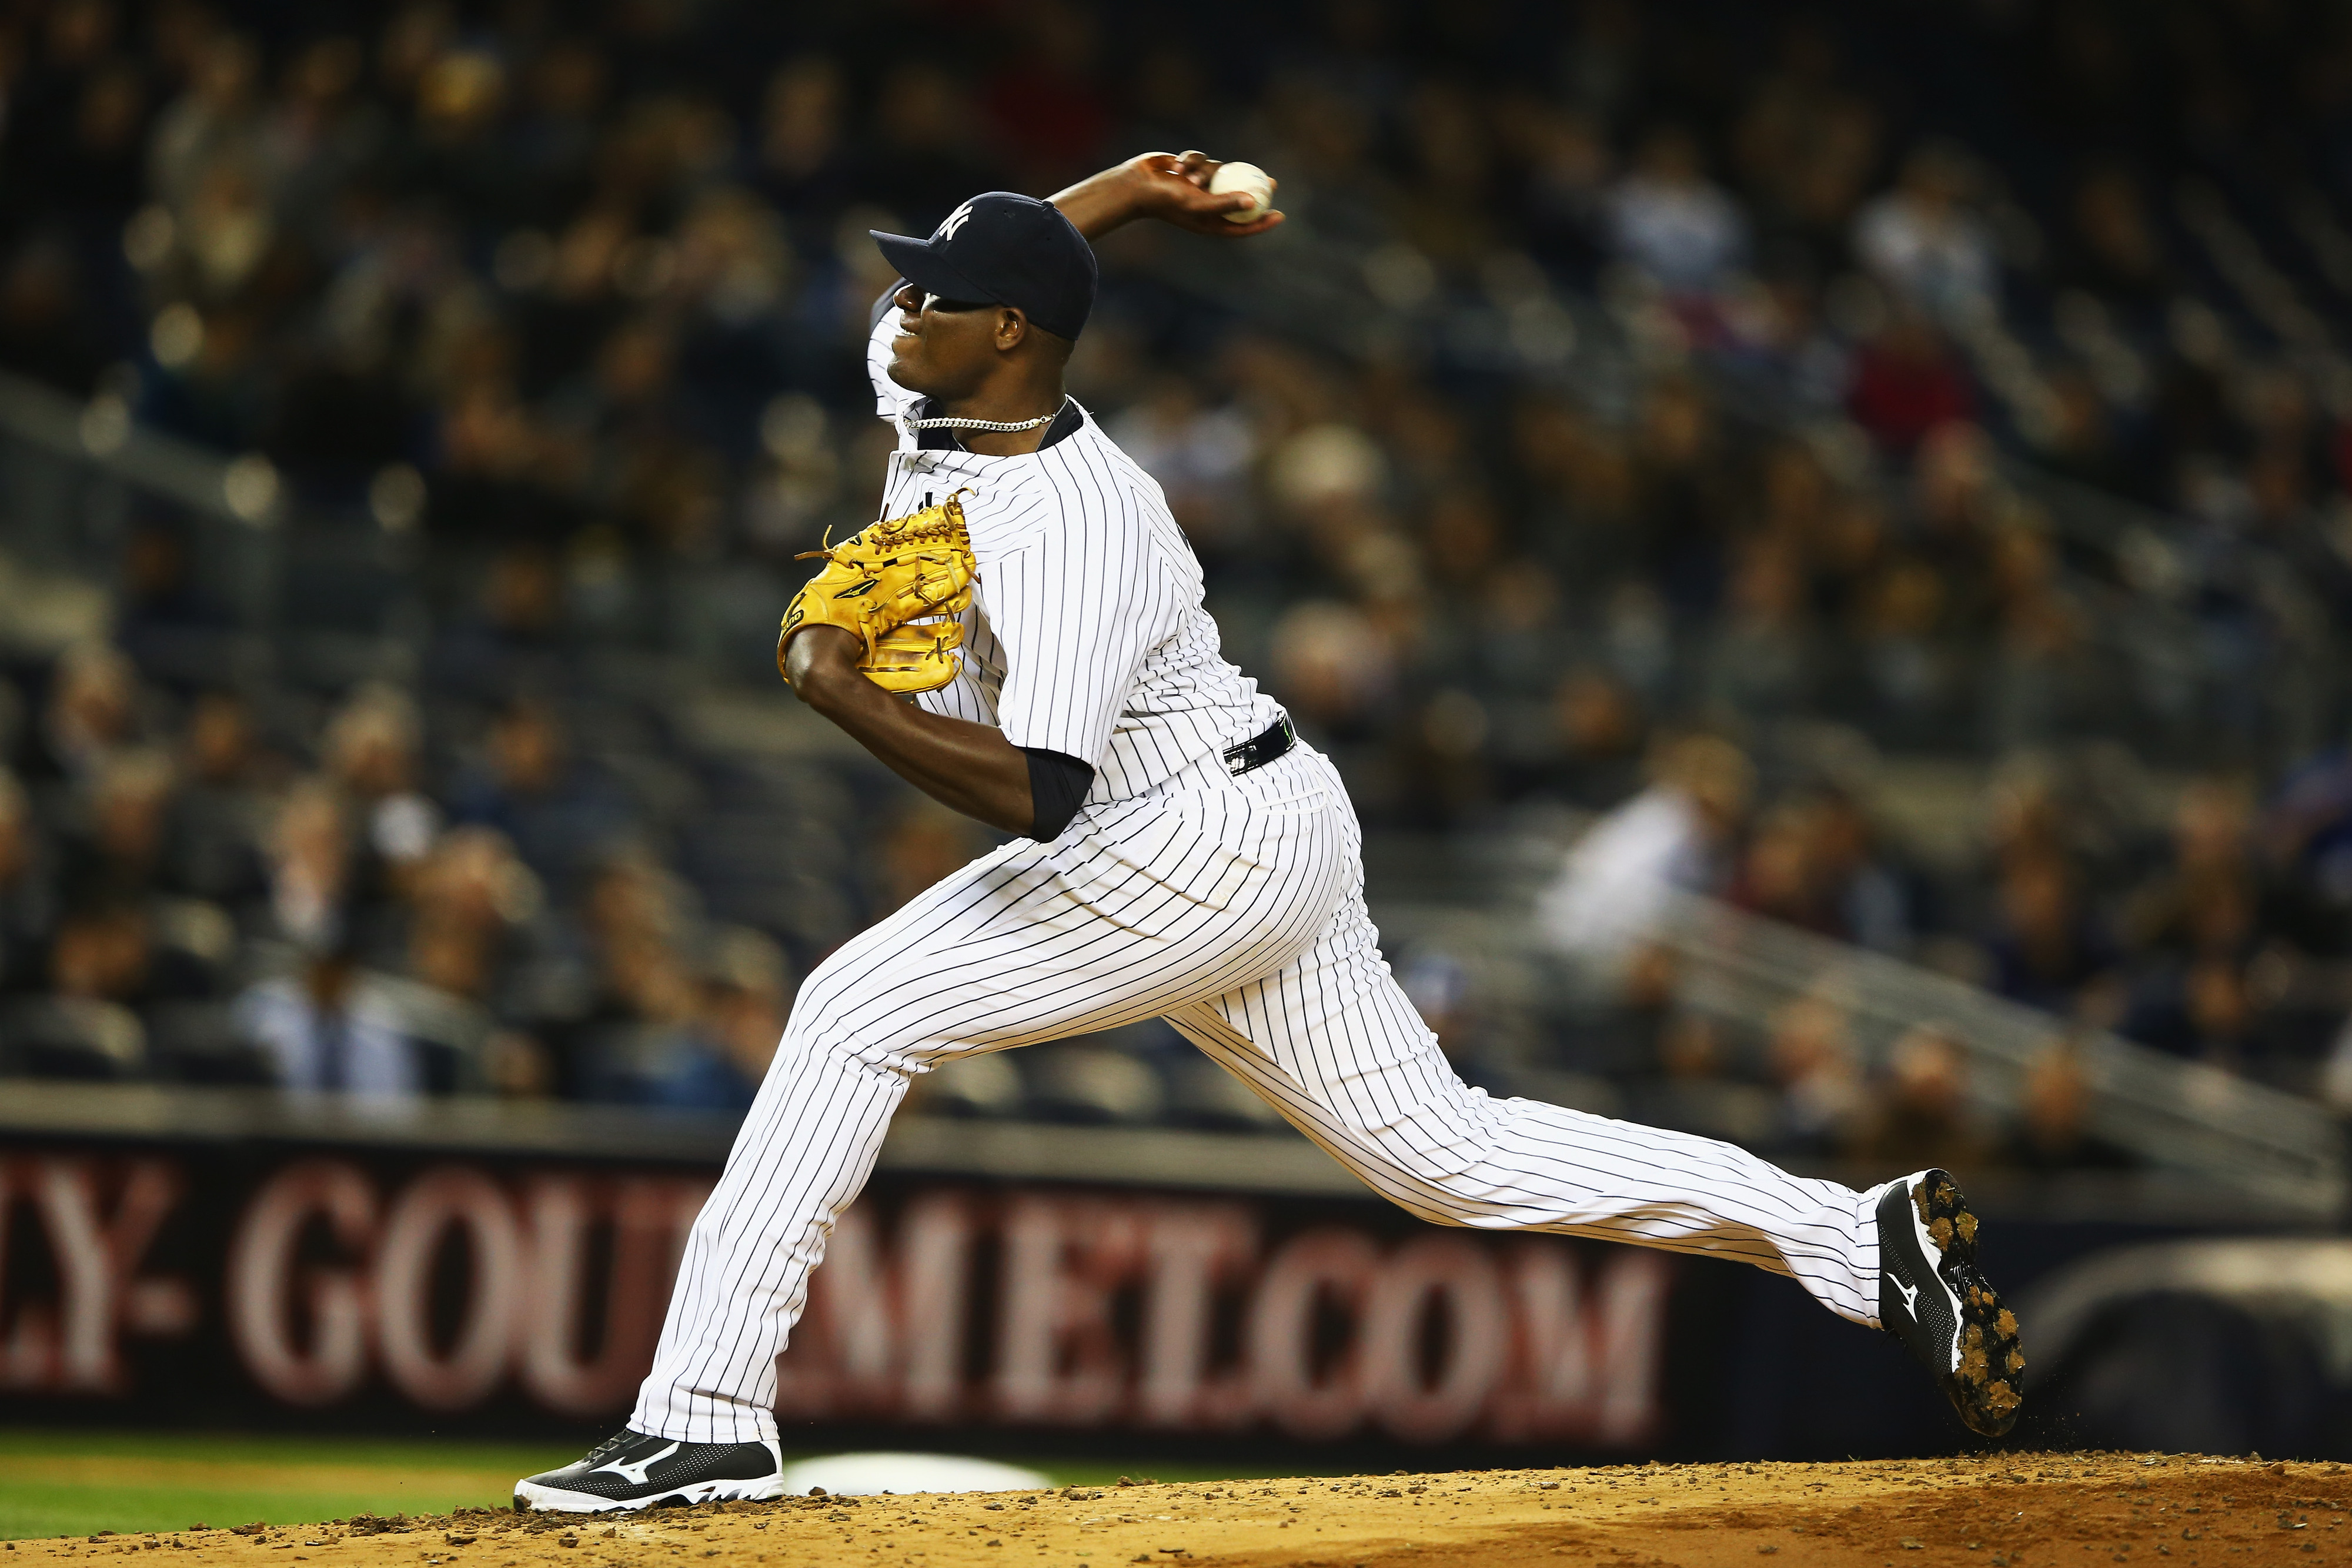 Pineda's slider follows in a long Yankee tradition of success, from Sparky to Coney